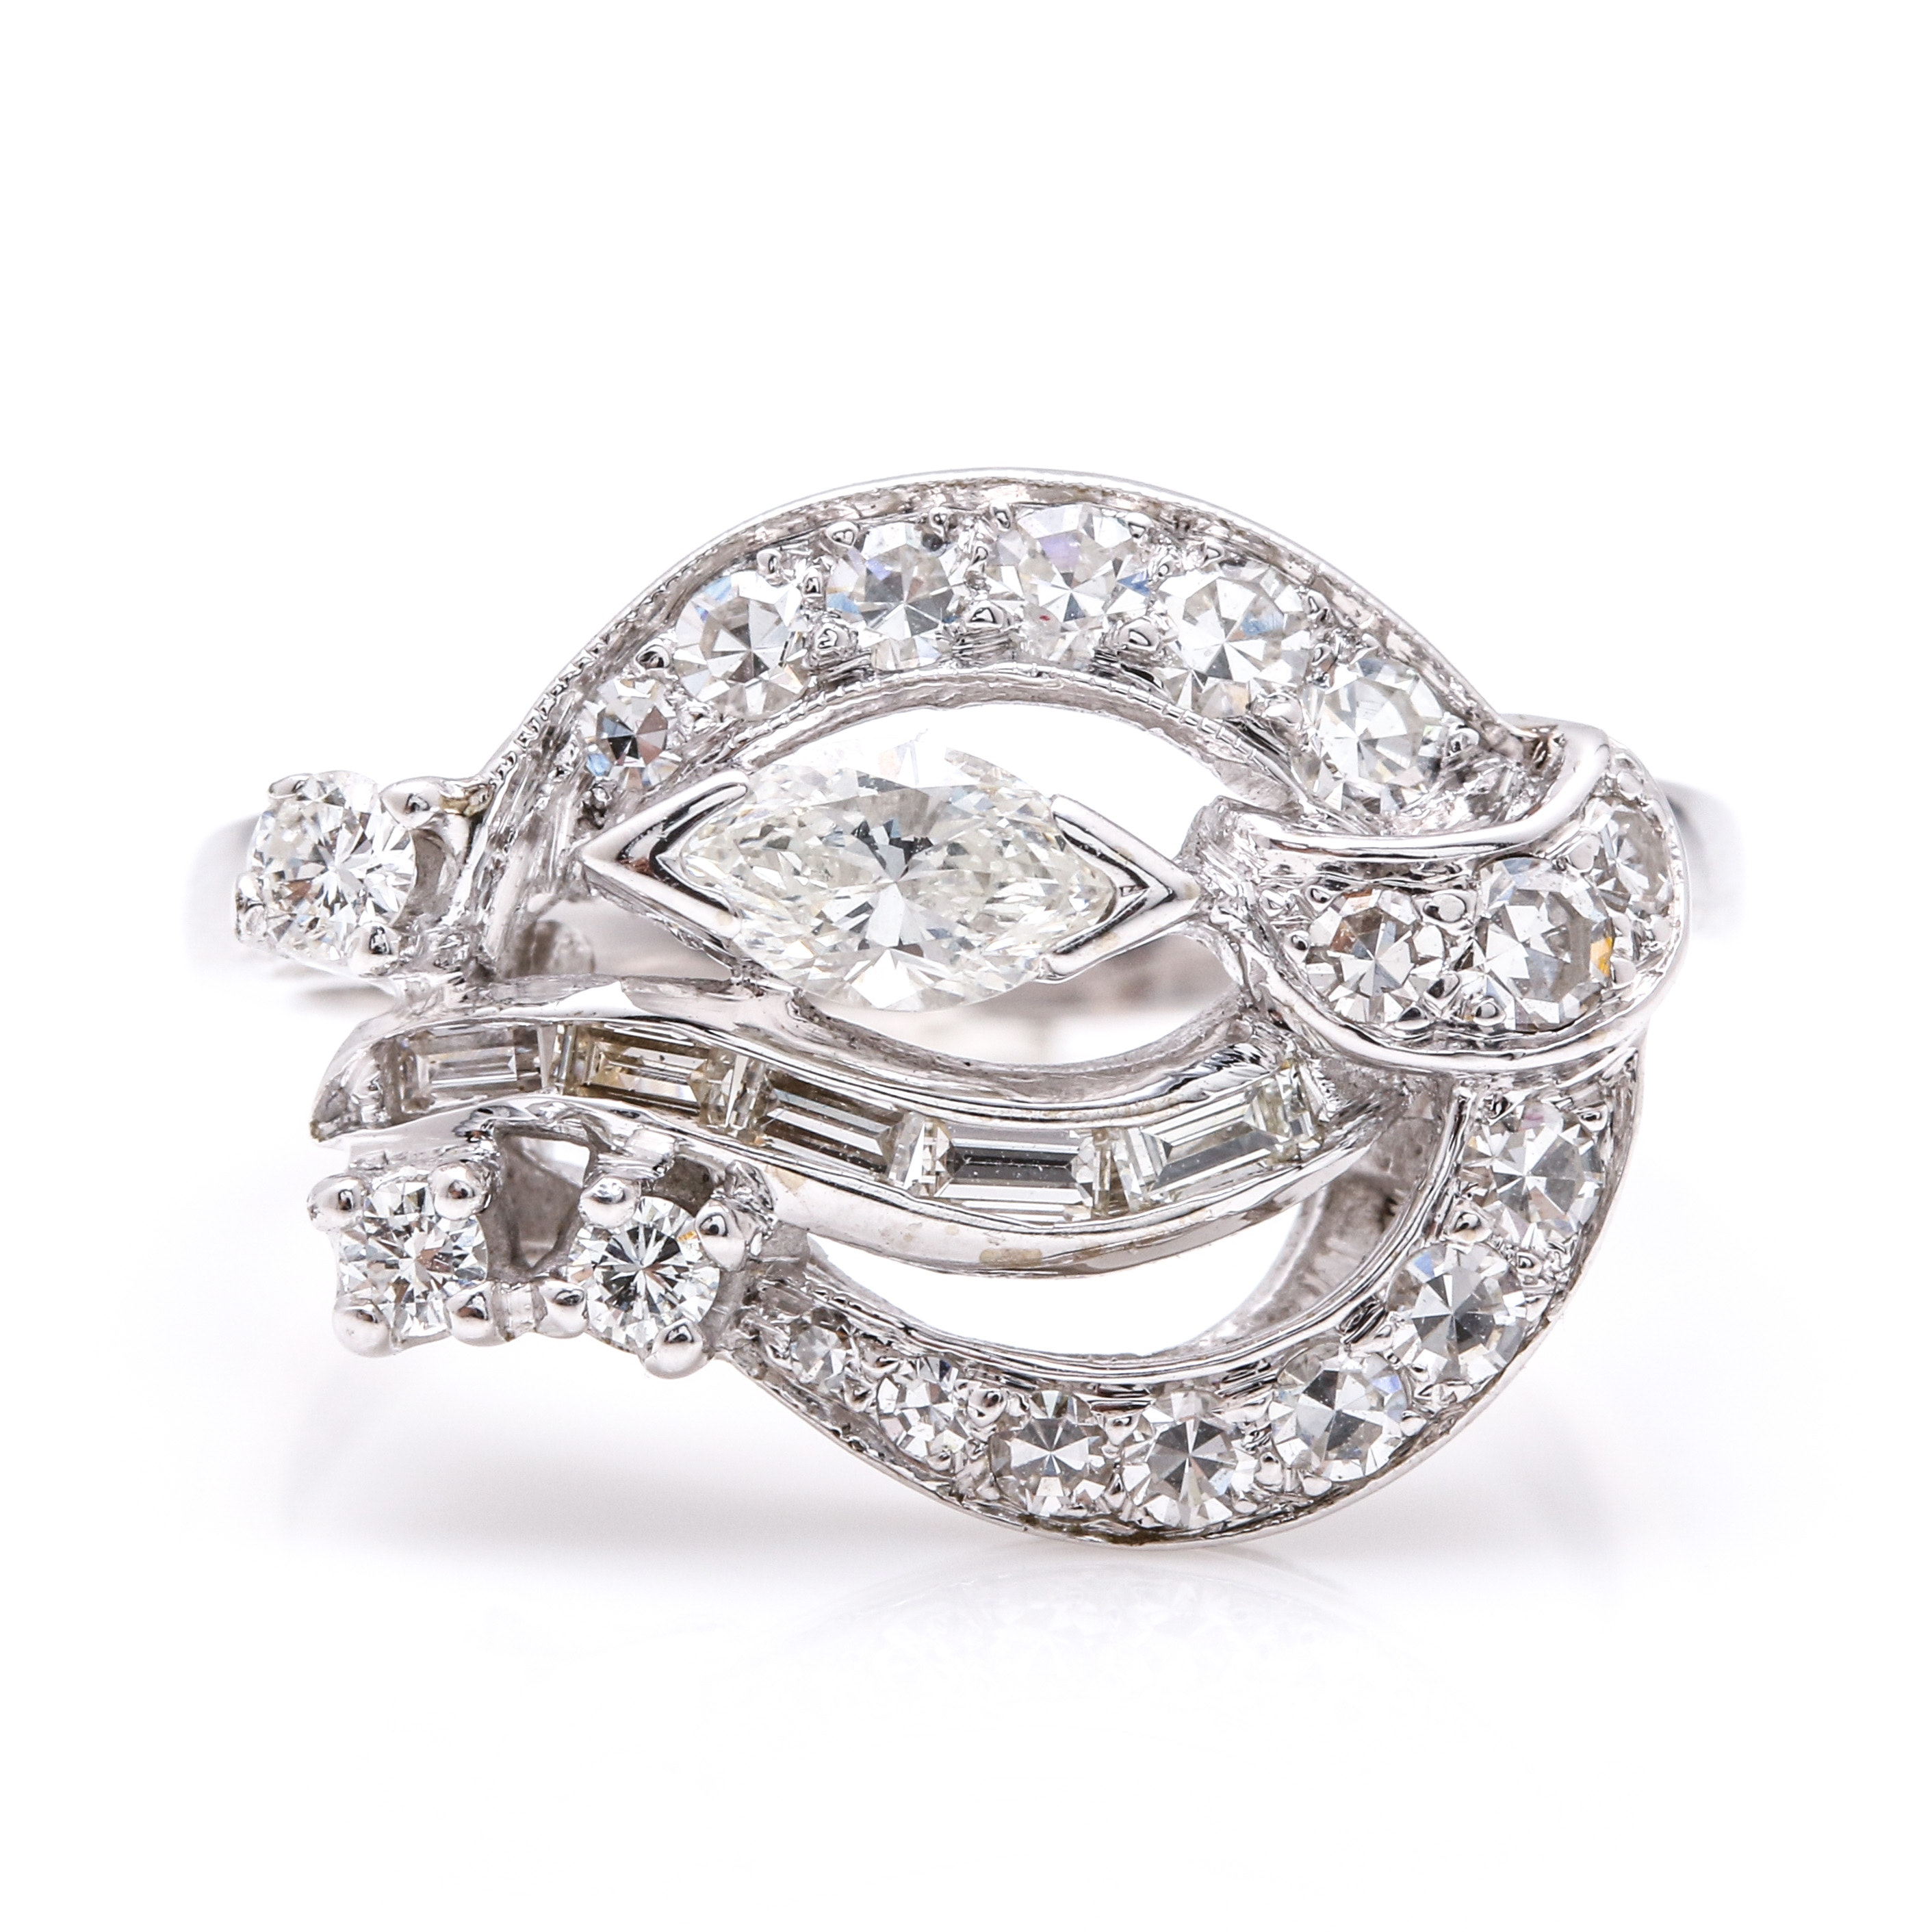 14K White Gold Fancy Diamond Ring